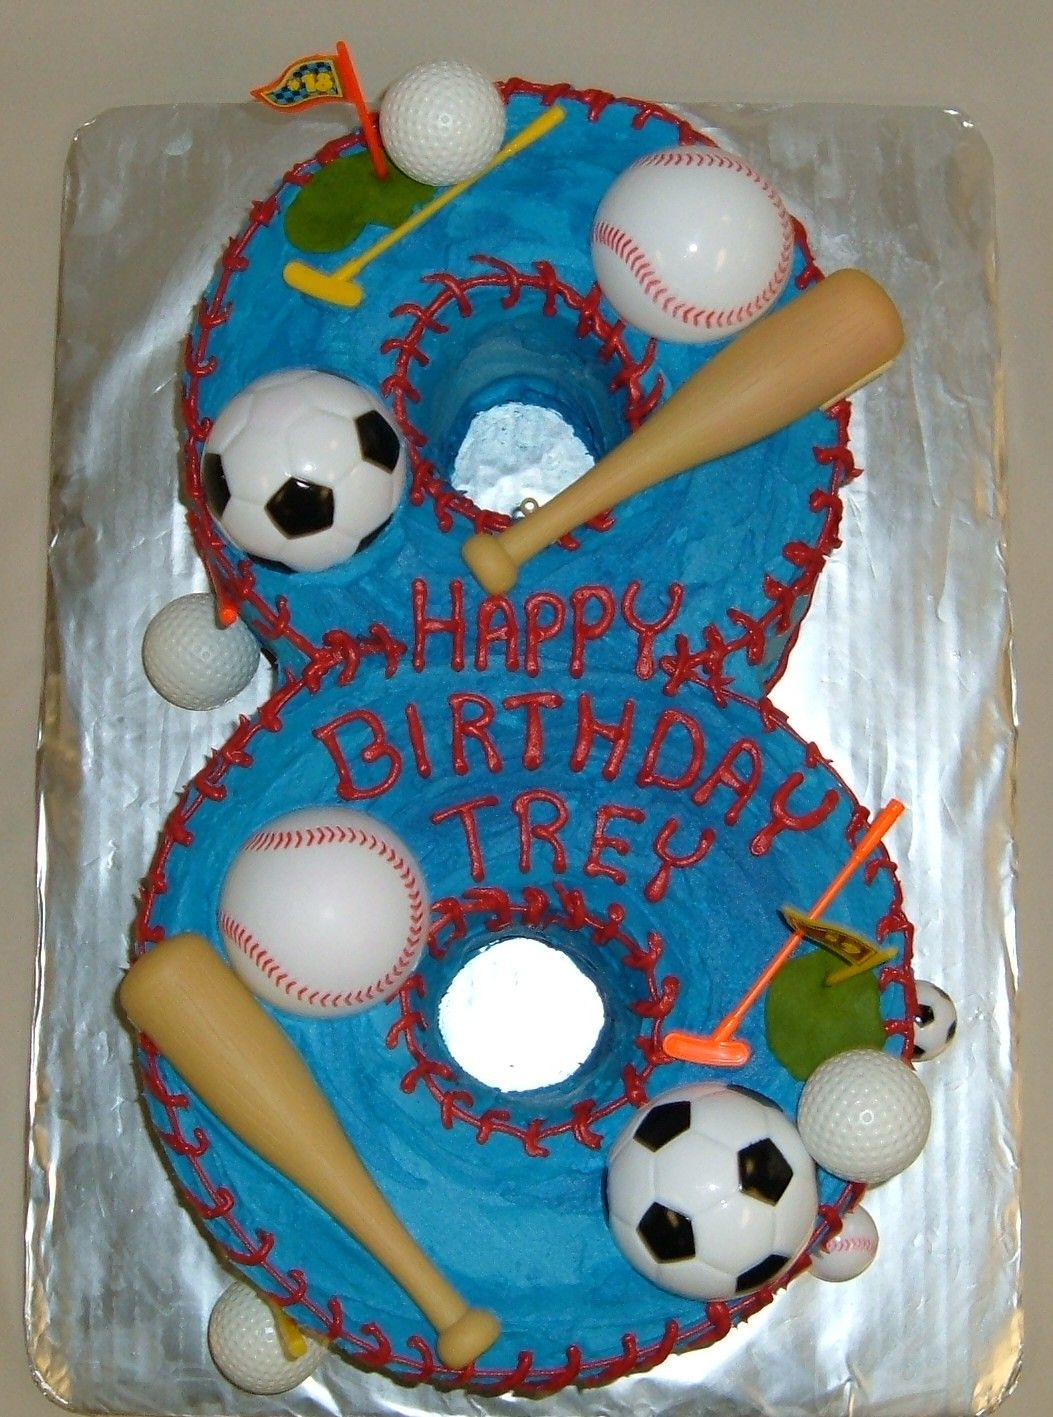 Incredible Custom Shaped Numeral Sports Cake Happy 8Th Birthday Trey Funny Birthday Cards Online Inifodamsfinfo